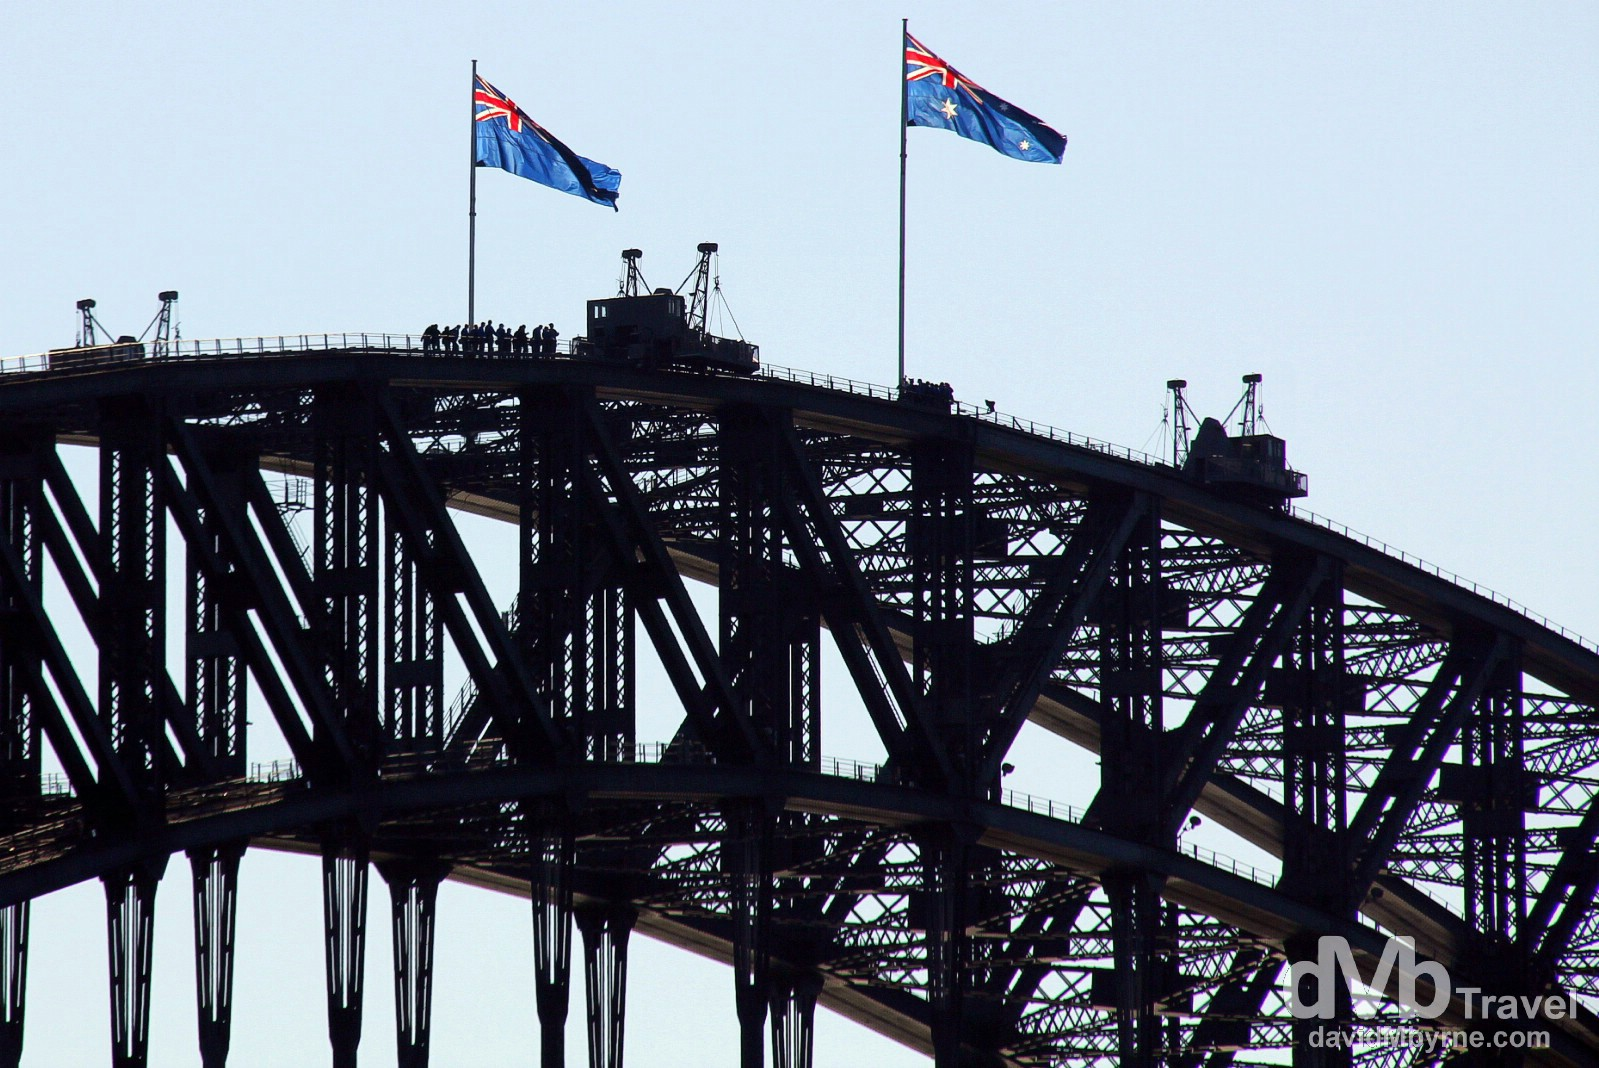 Climbers atop the Sydney Harbour Bridge as seen from the Manly Ferry in Sydney Cove, Sydney, Australia. June 8th 2012.